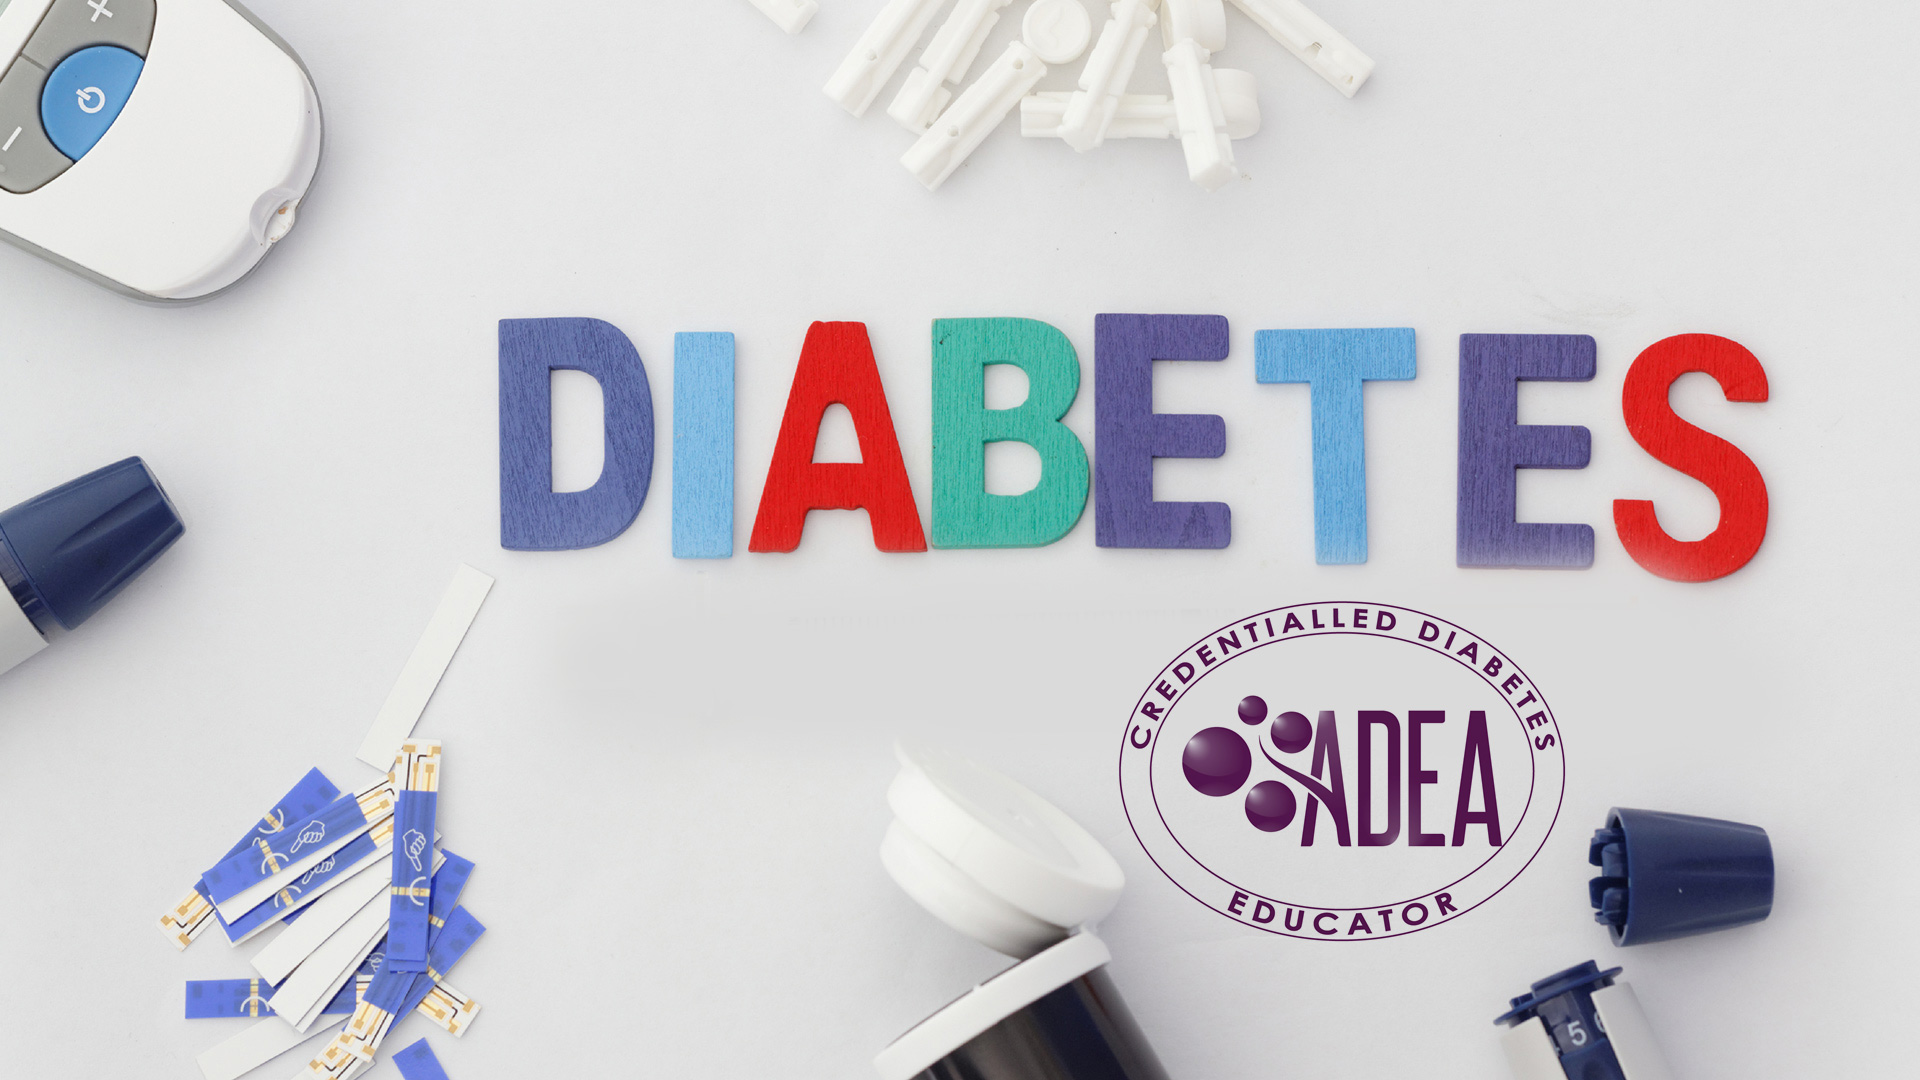 Diabetes Educator